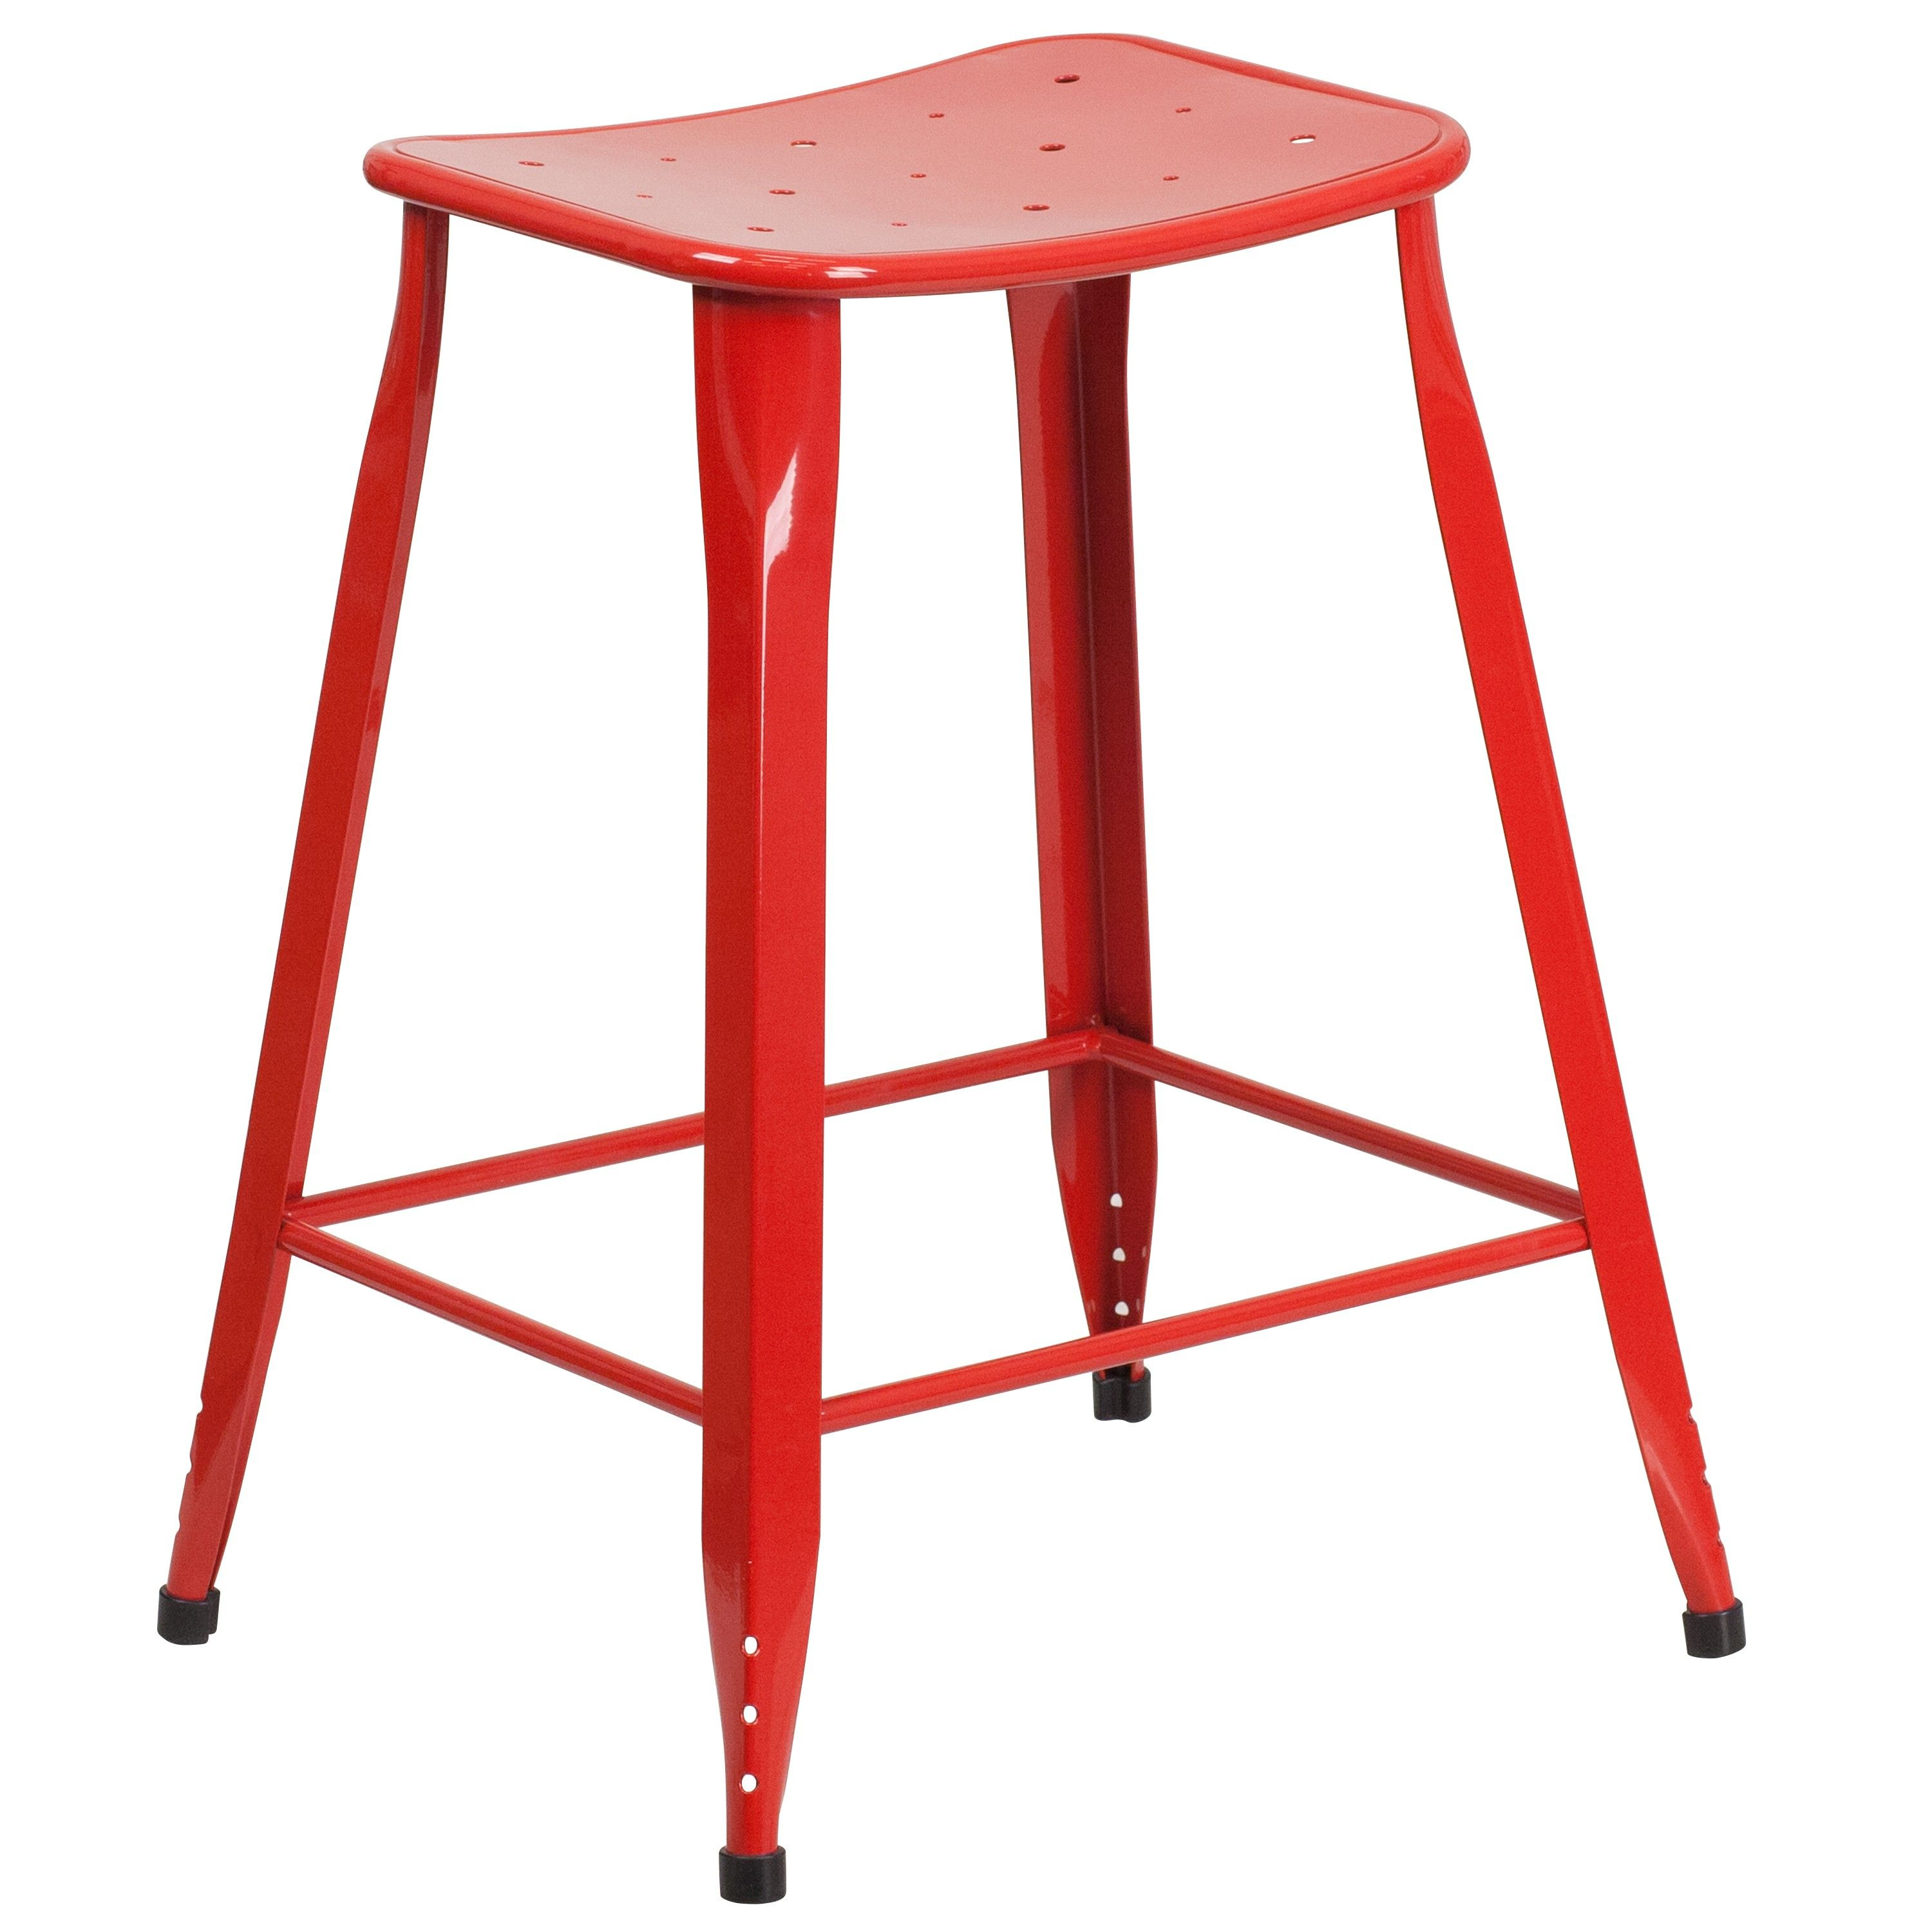 Sleek And Incredibly Fashionable This Flash Furniture Distressed Orange Metal Indoor Outdoor Counter Height Stool Will Update Your Home Bar